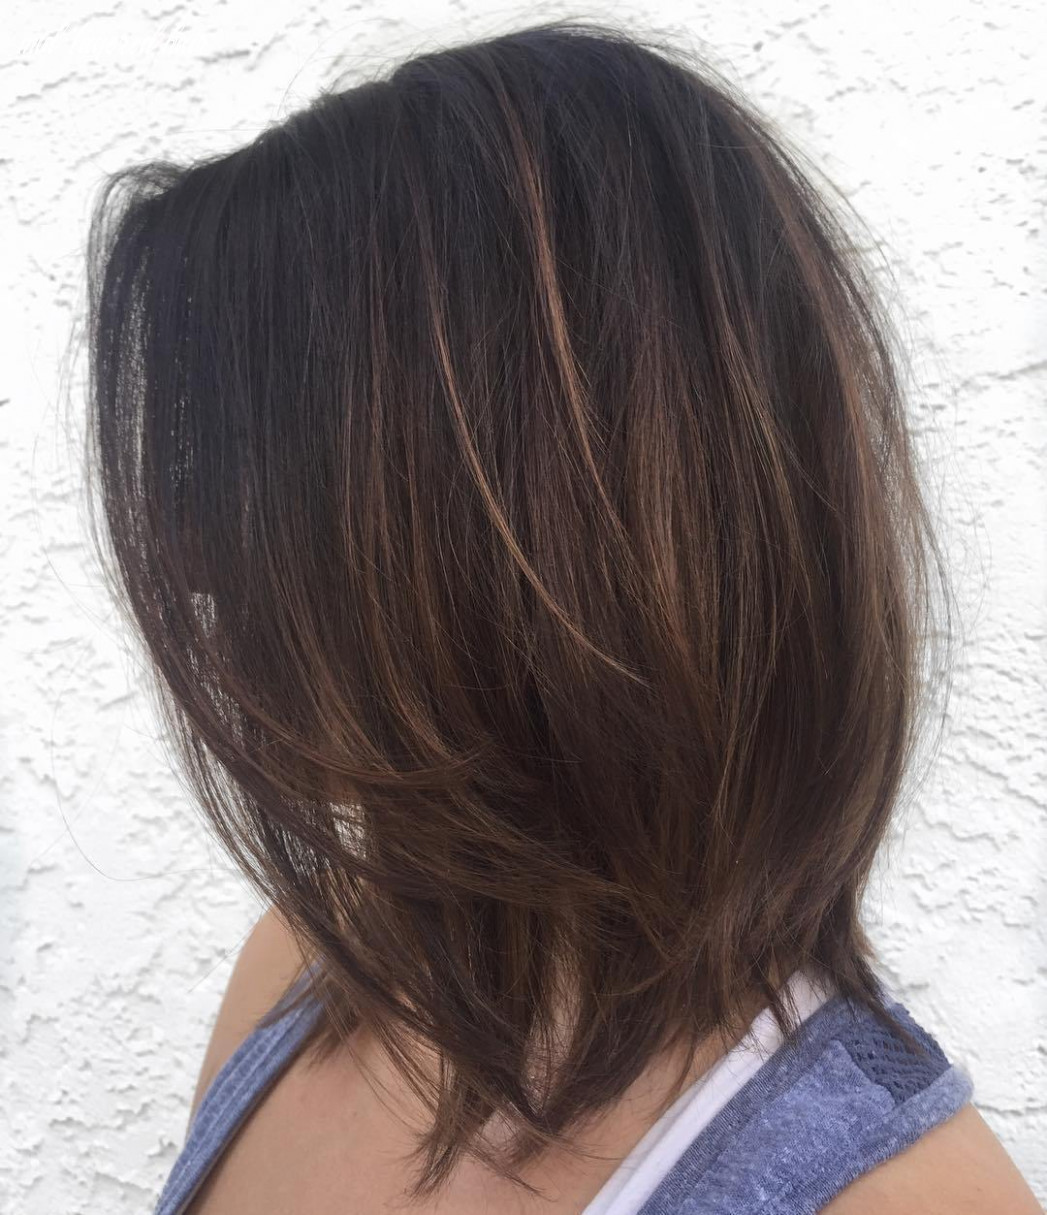 9 perfect medium length hairstyles for thin hair in 9 mid layered hair